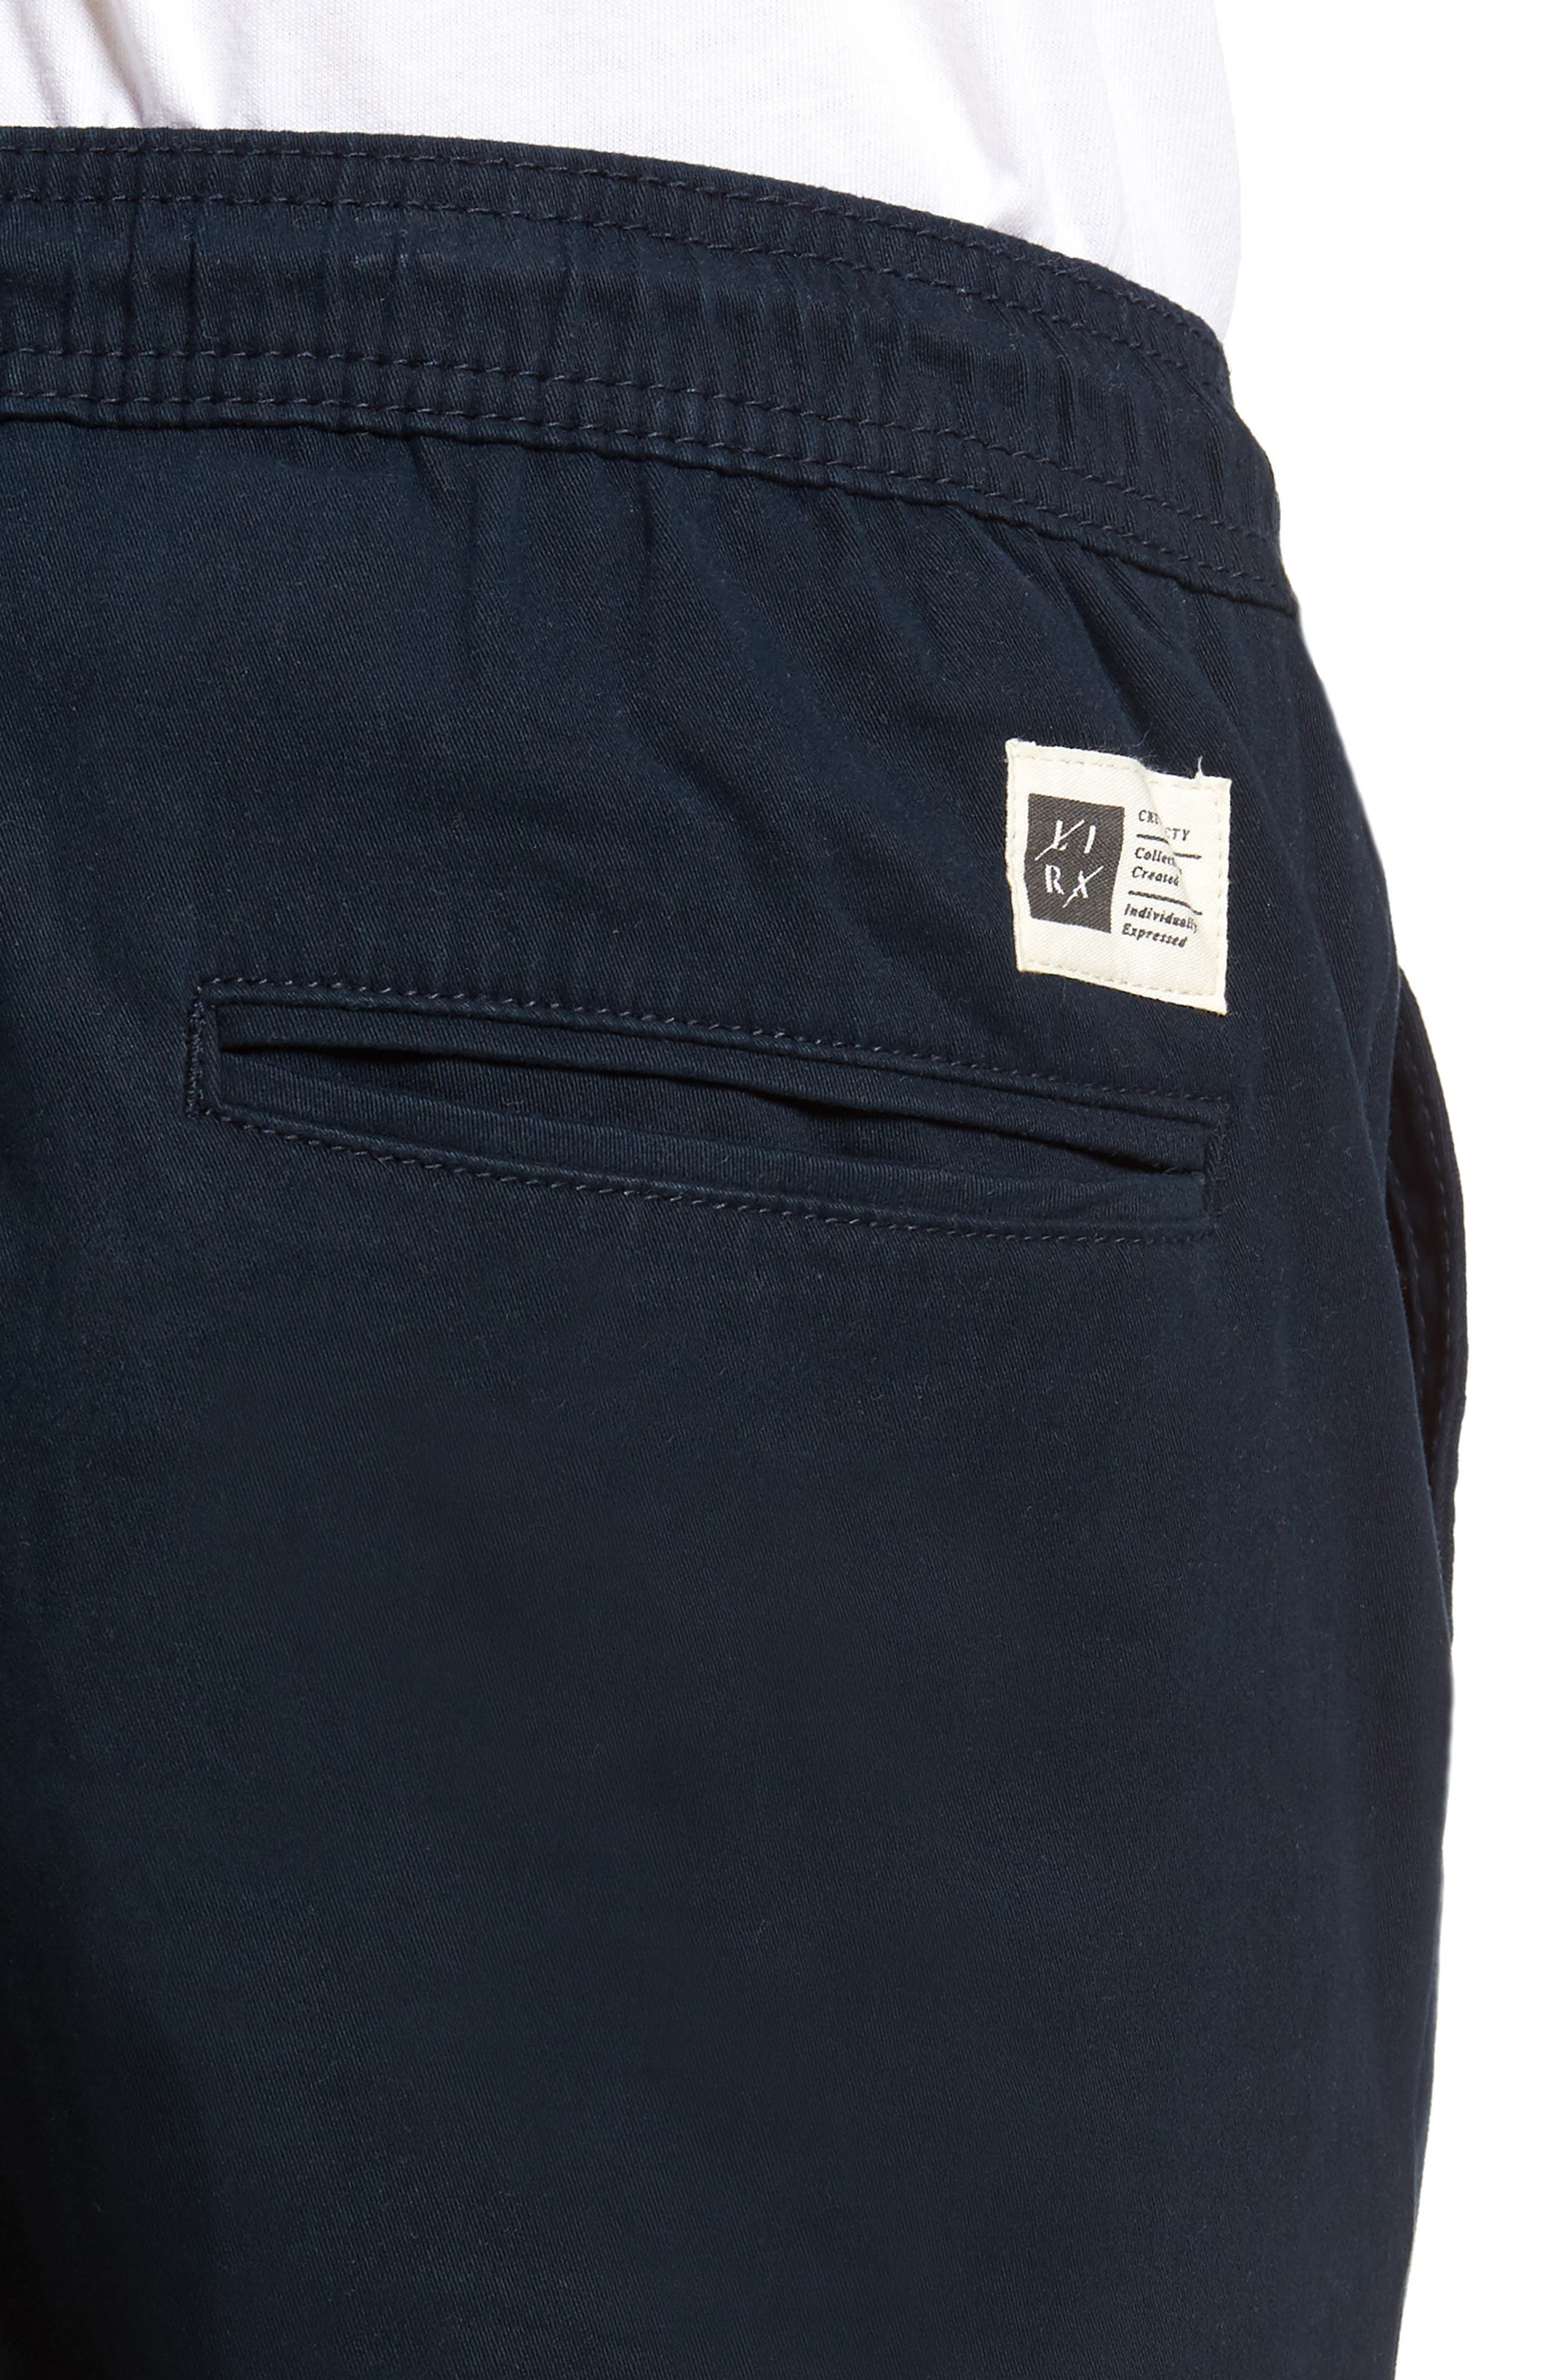 Weekend Jogger Pants,                             Alternate thumbnail 30, color,